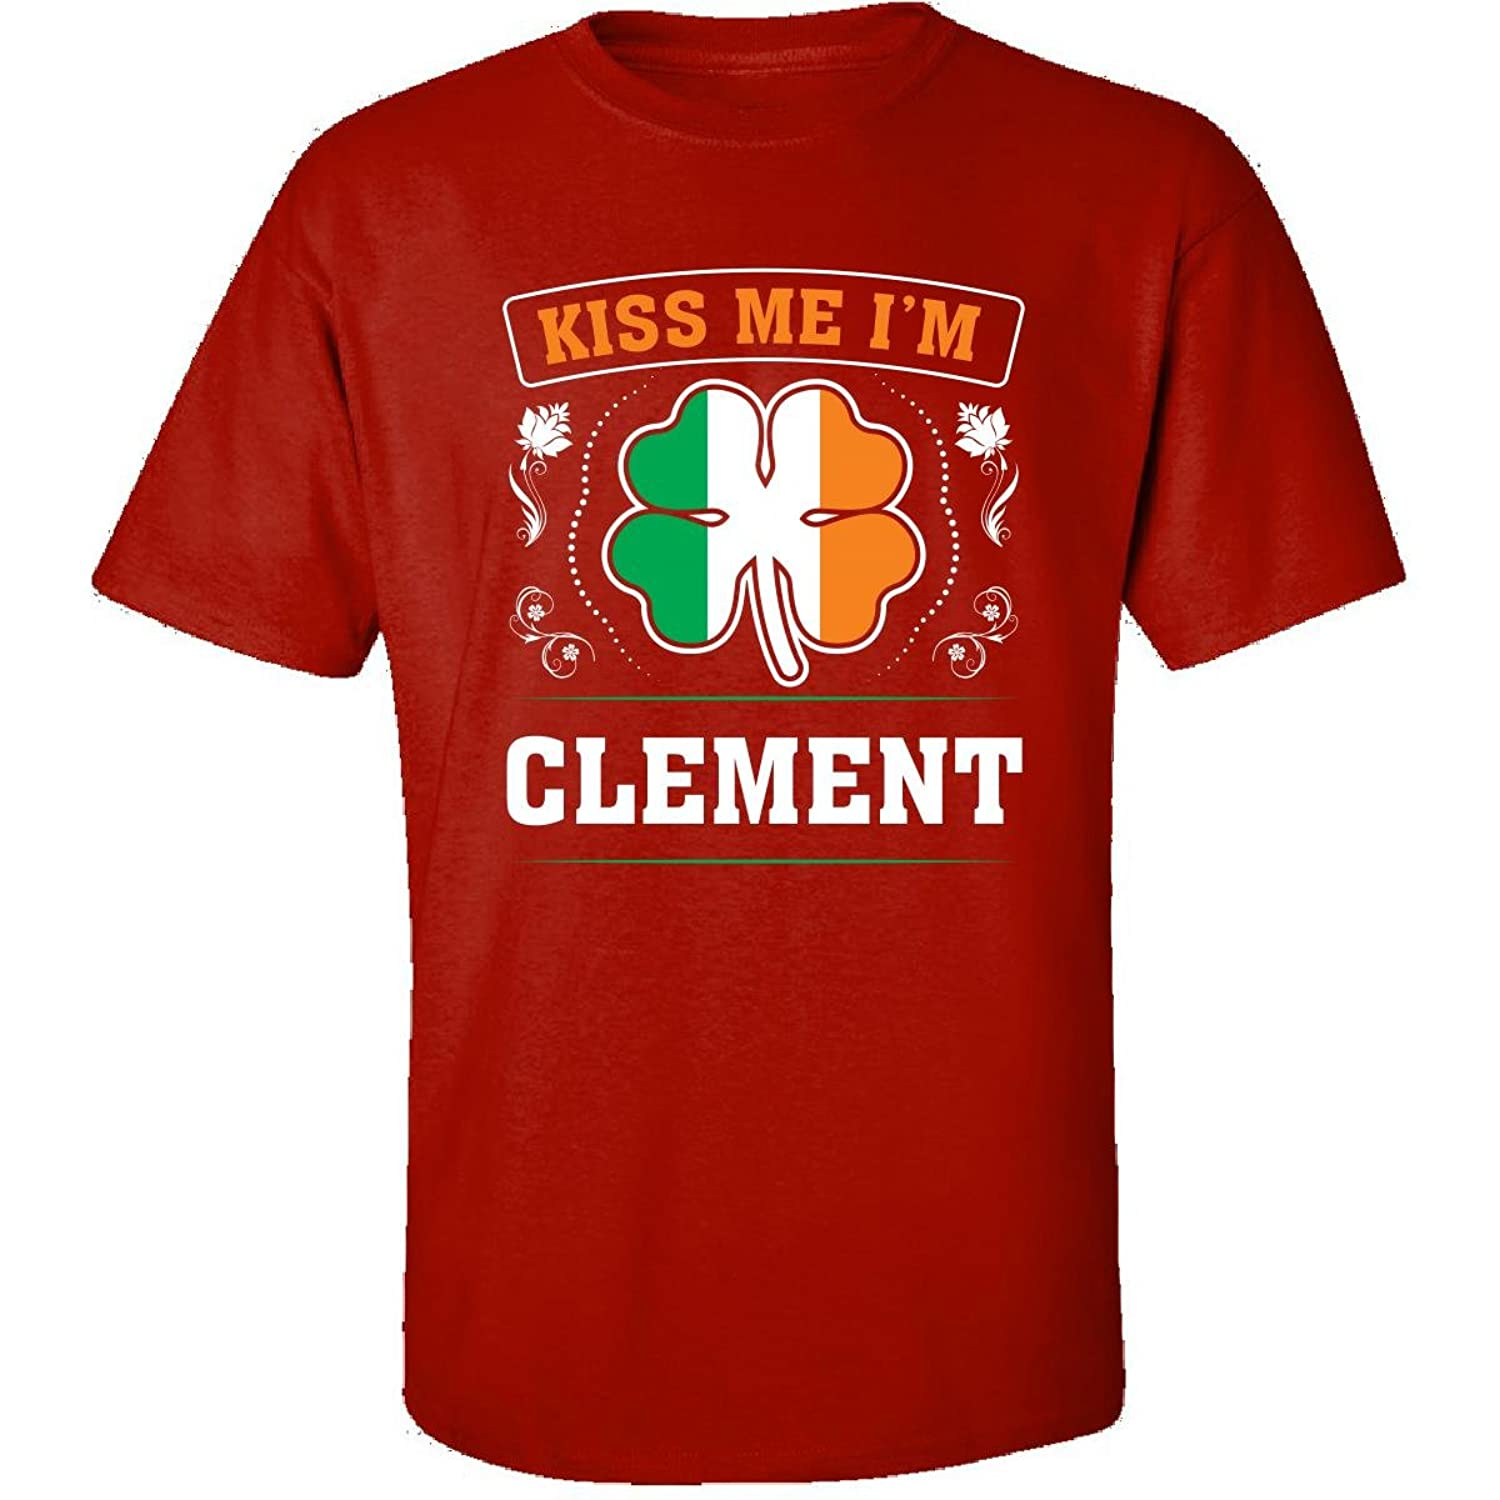 Kiss Me Im Clement And Irish St Patricks Day Gift - Adult Shirt